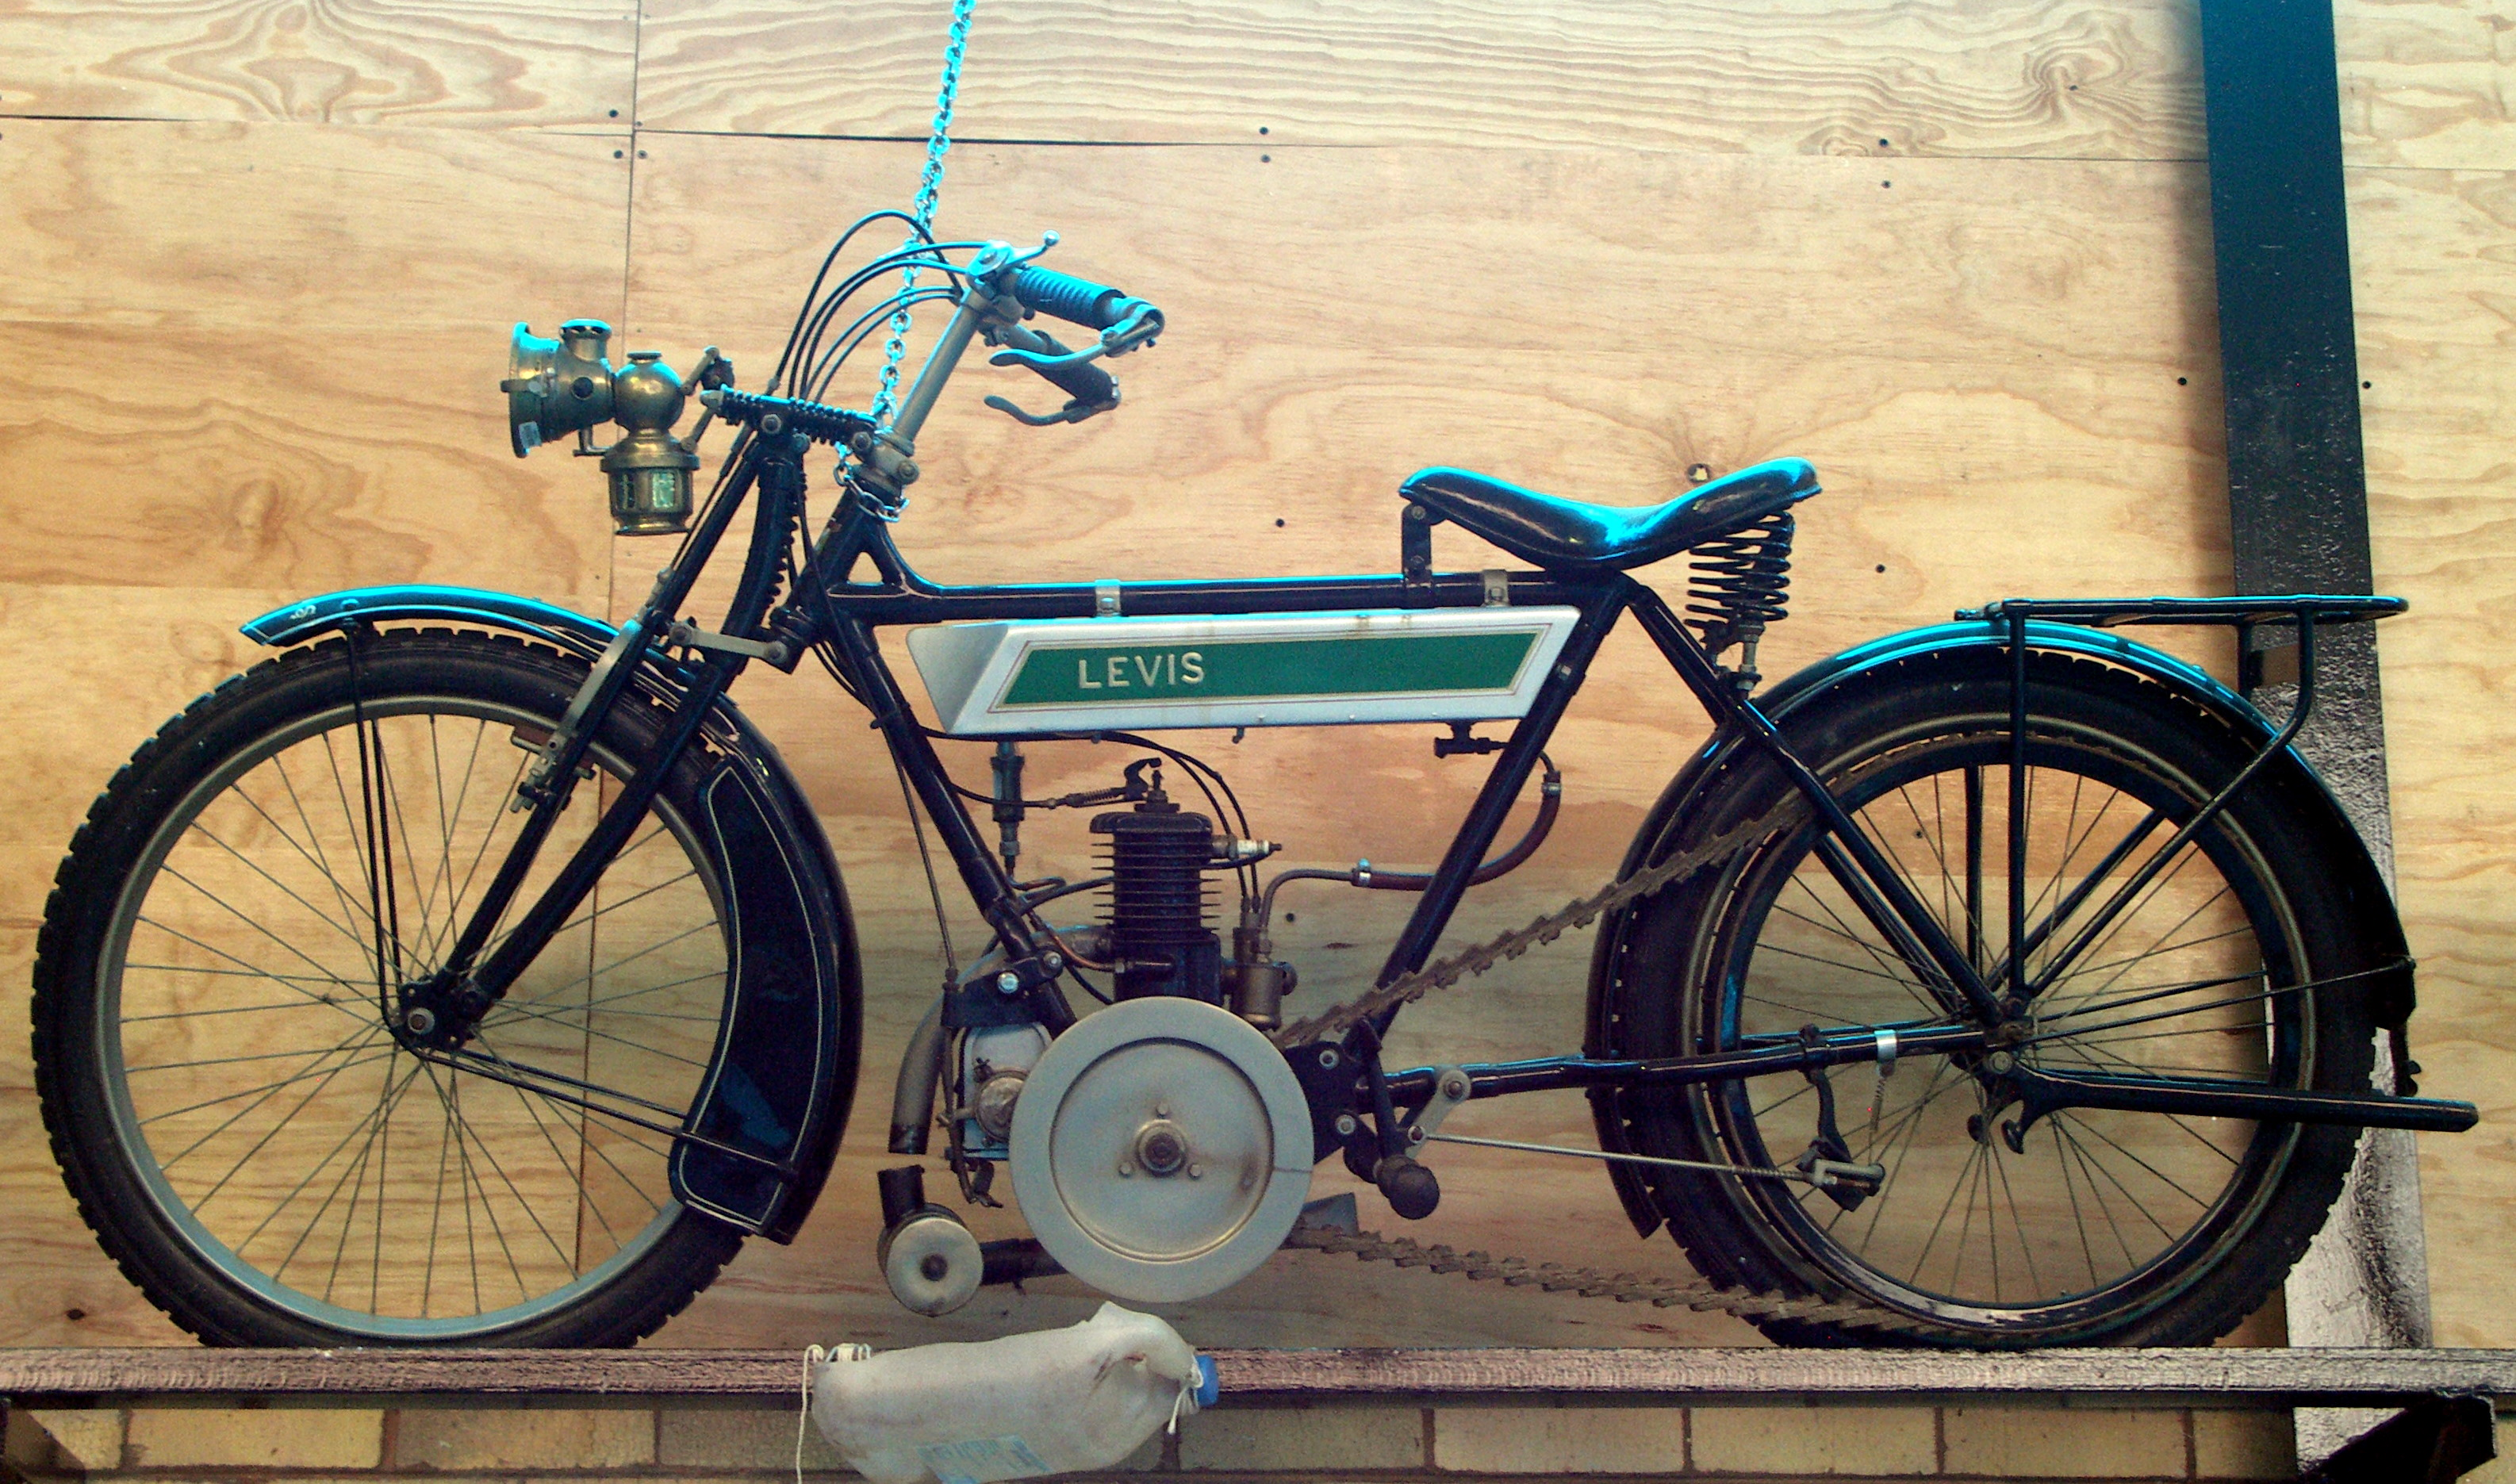 Levis Motorcycle